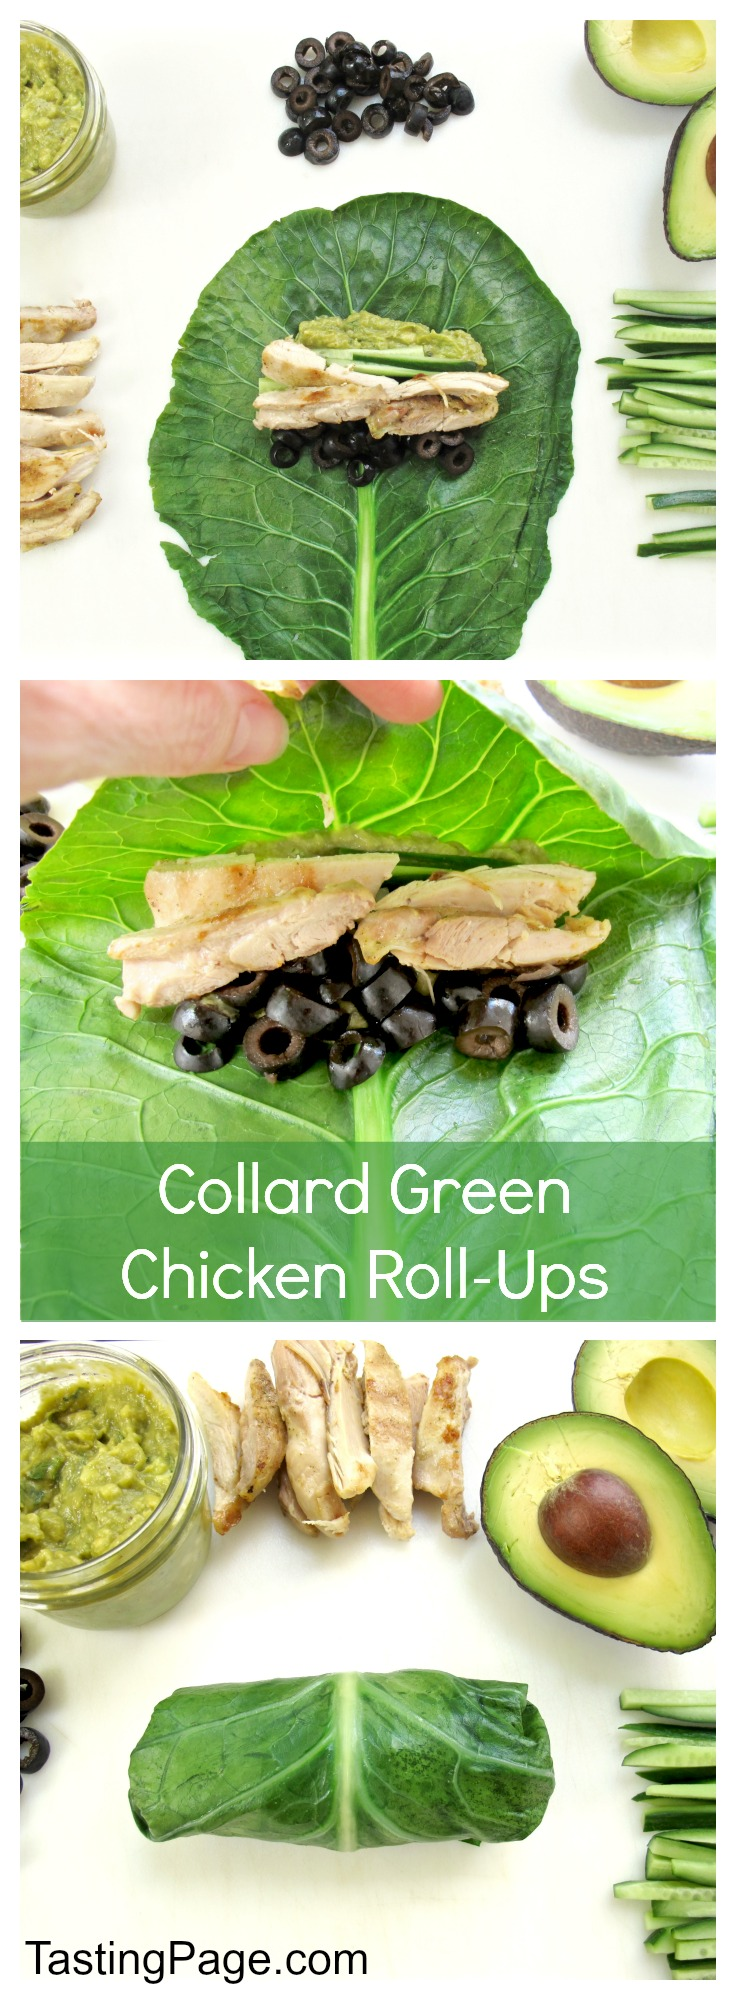 Gluten Free Collard Green Chicken Roll Ups - Tasting Page